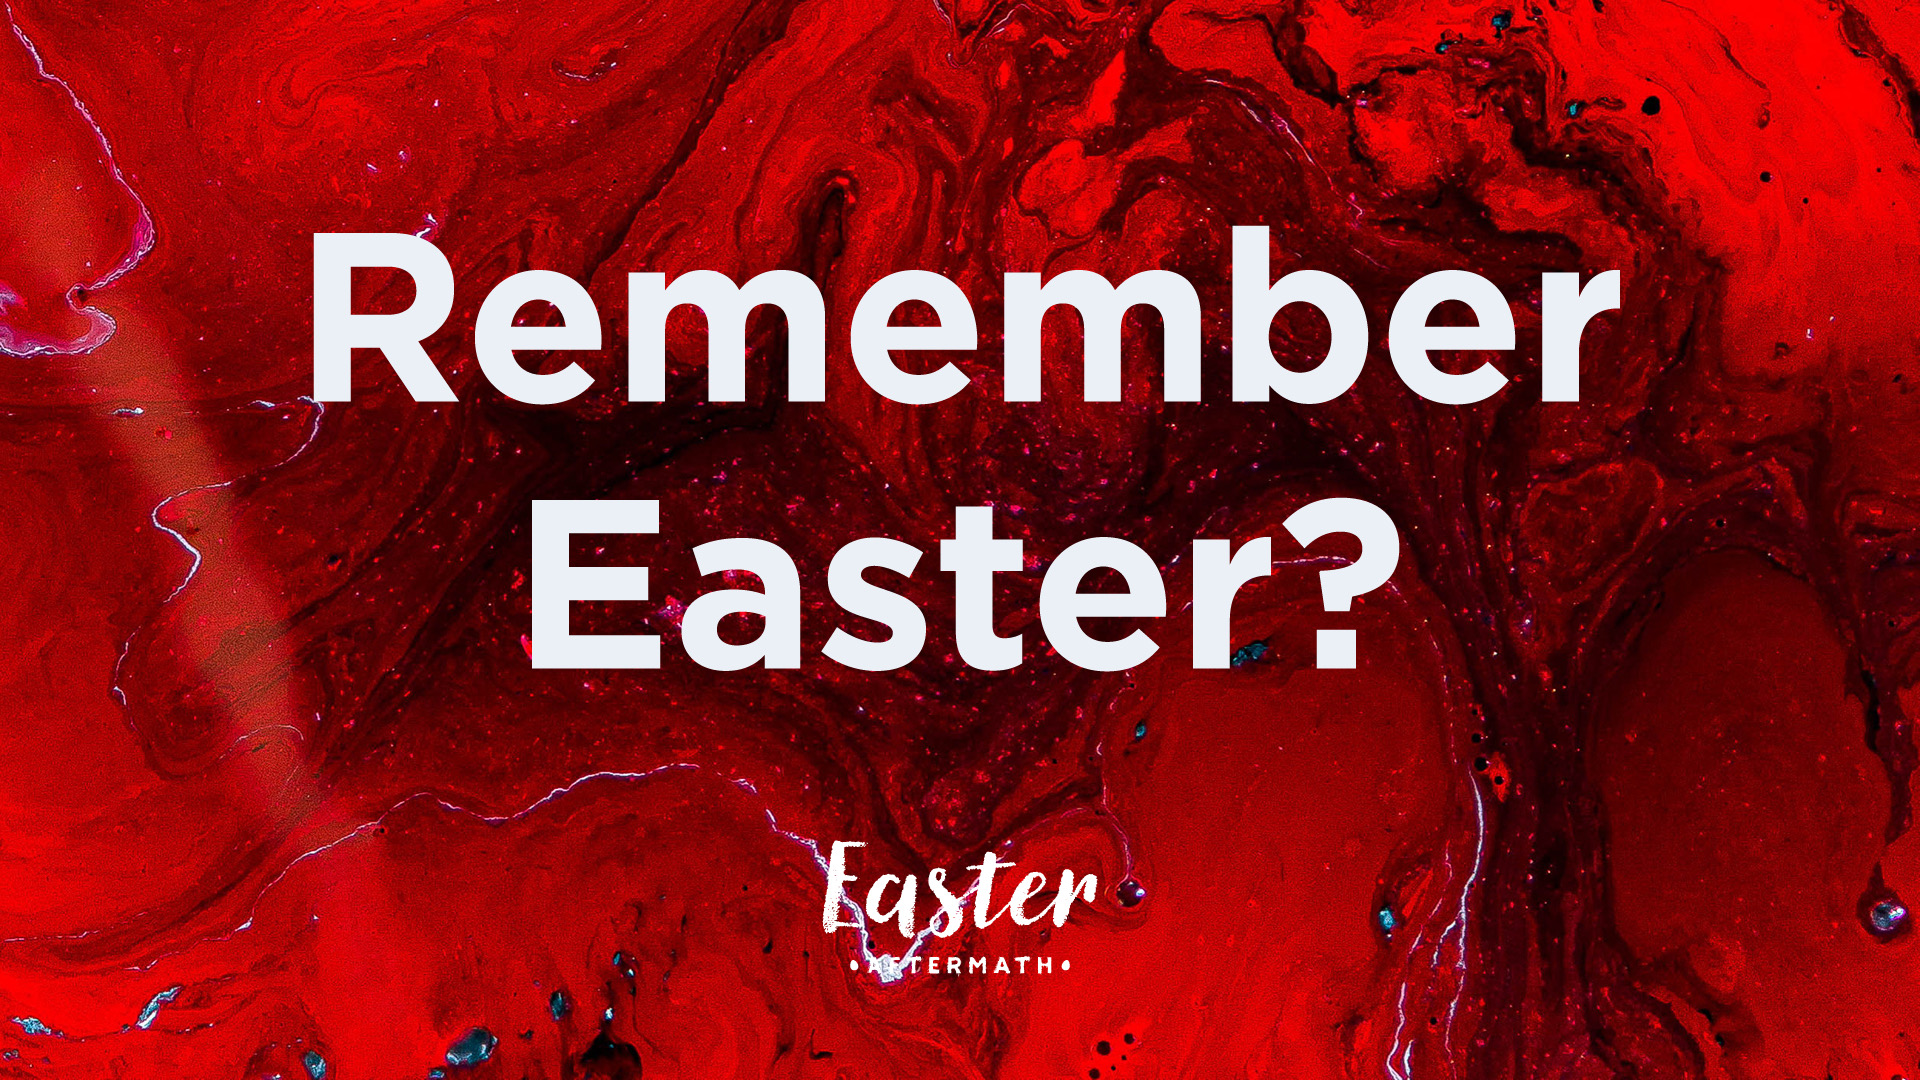 Easter Aftermath: Remember Easter?